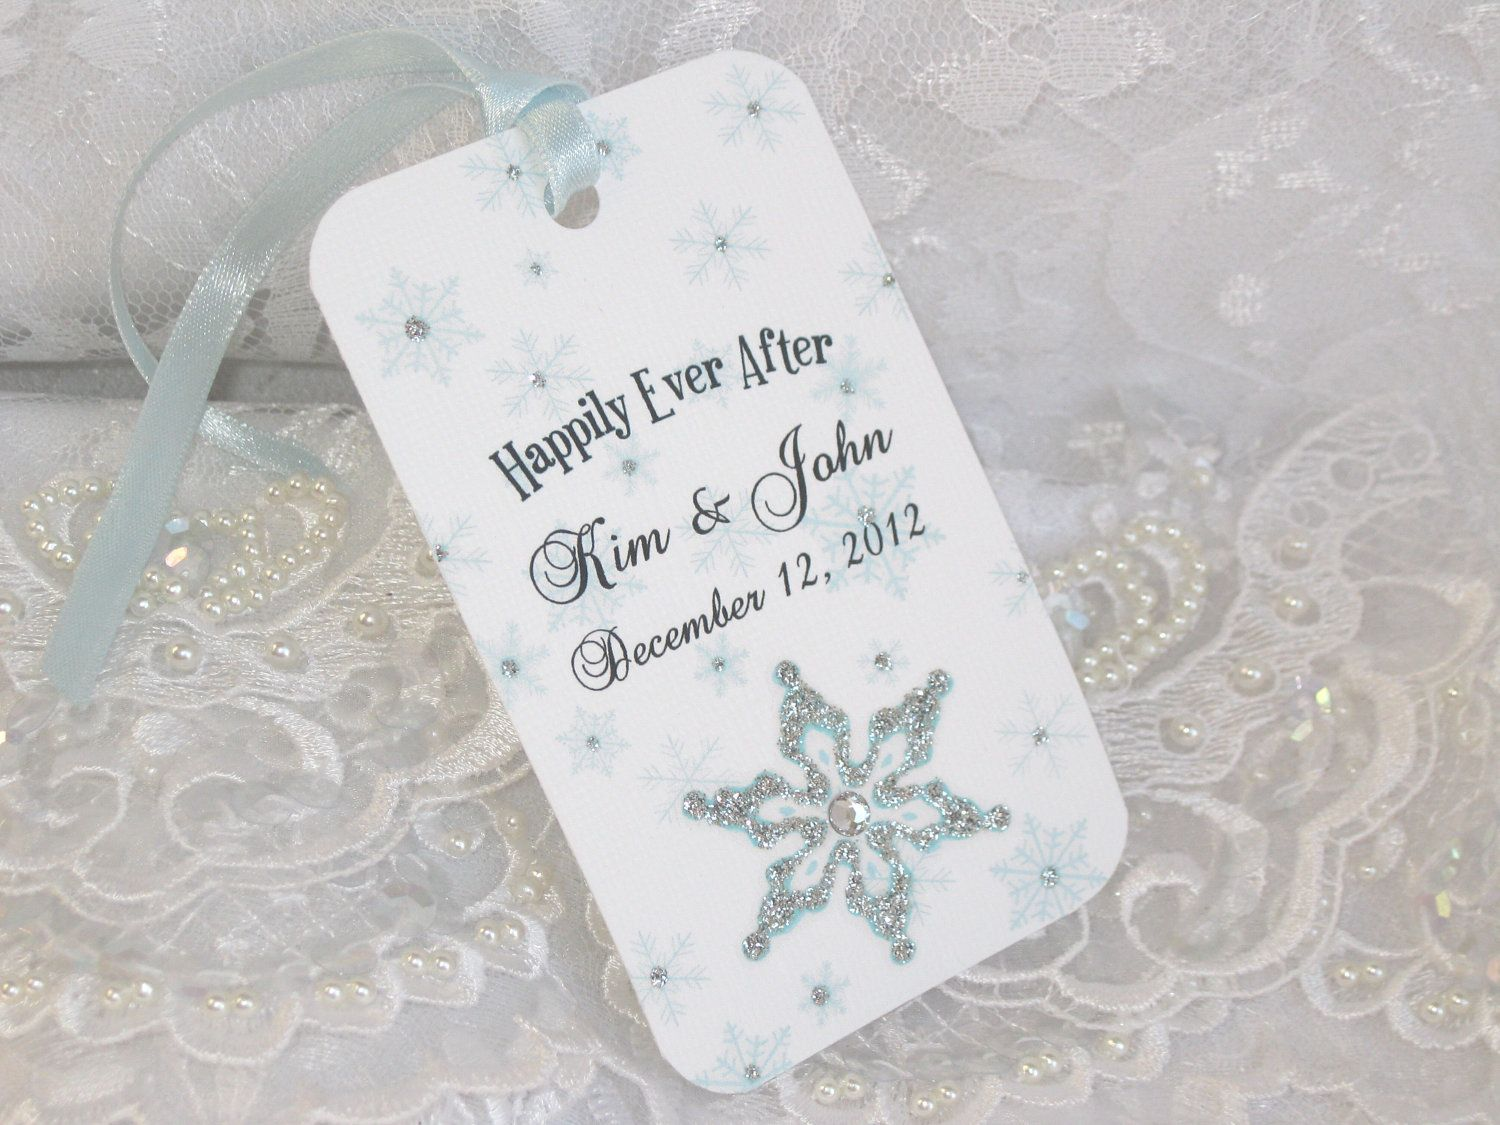 Snowflake Personalized Winter Wishing Tree Tag Tags Wedding ...